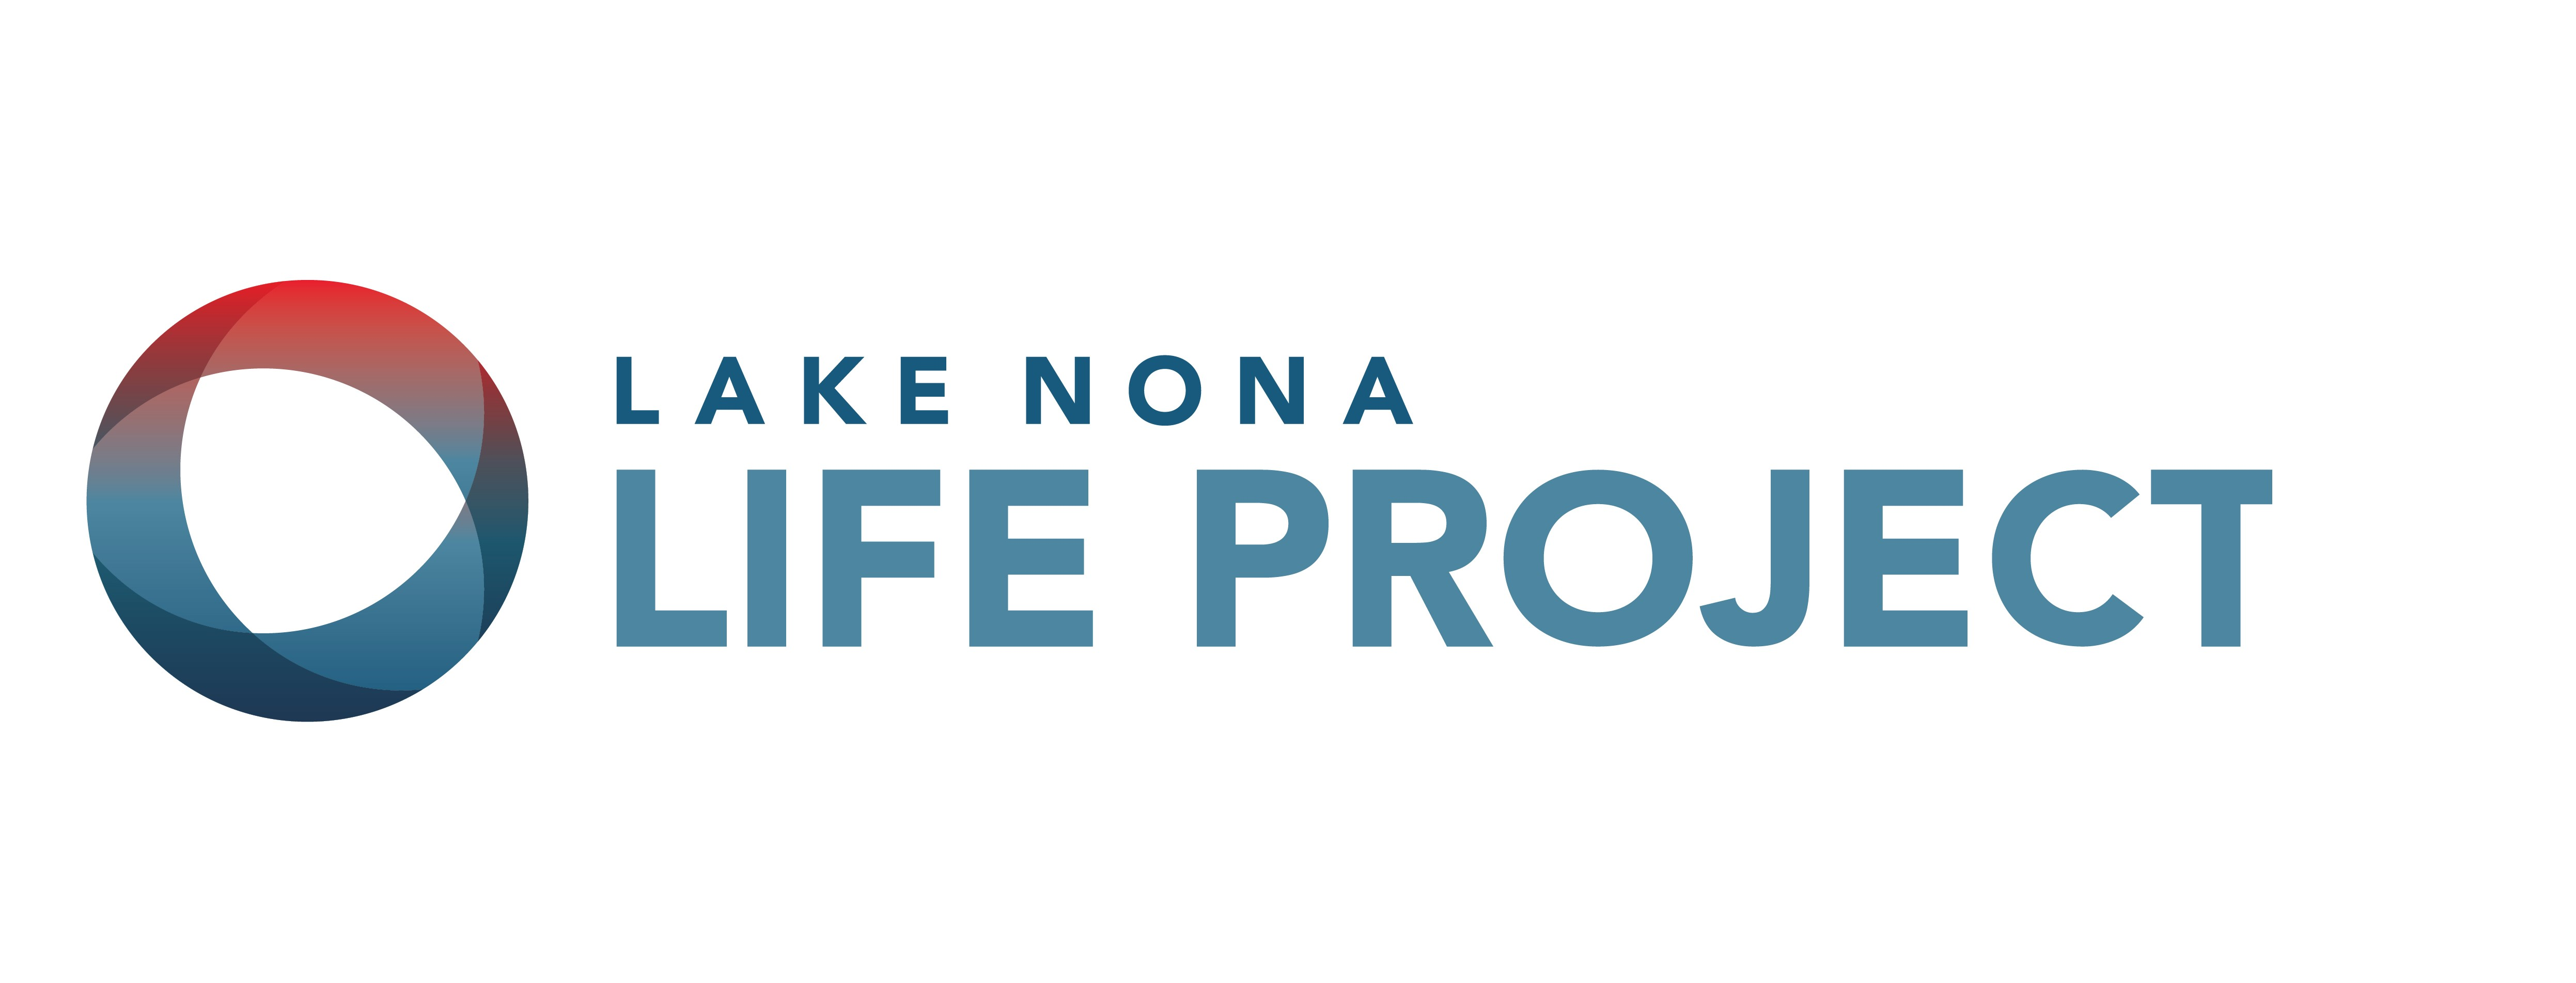 Lake Nona Life Project logo